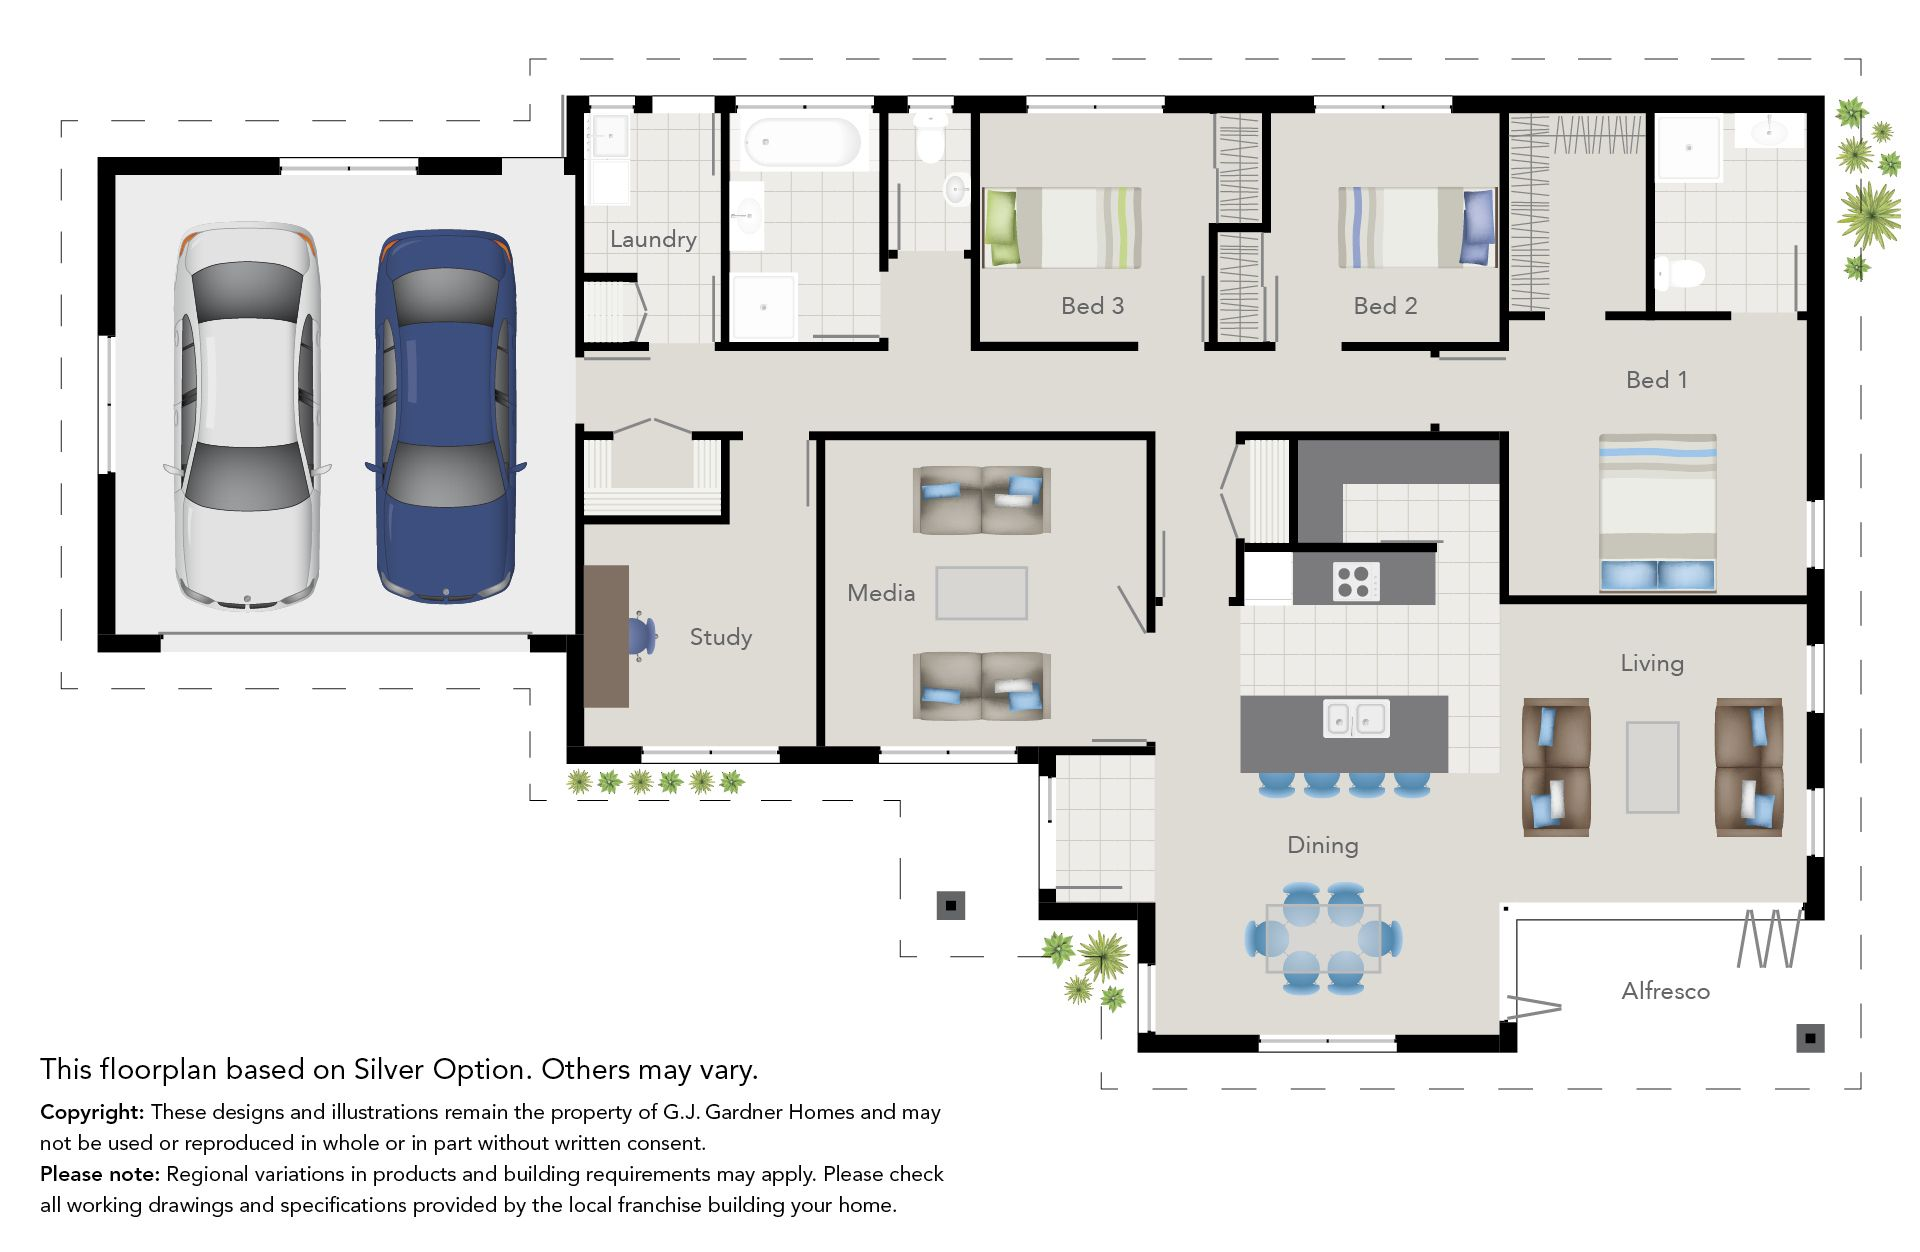 210sqm house example - Example House Design